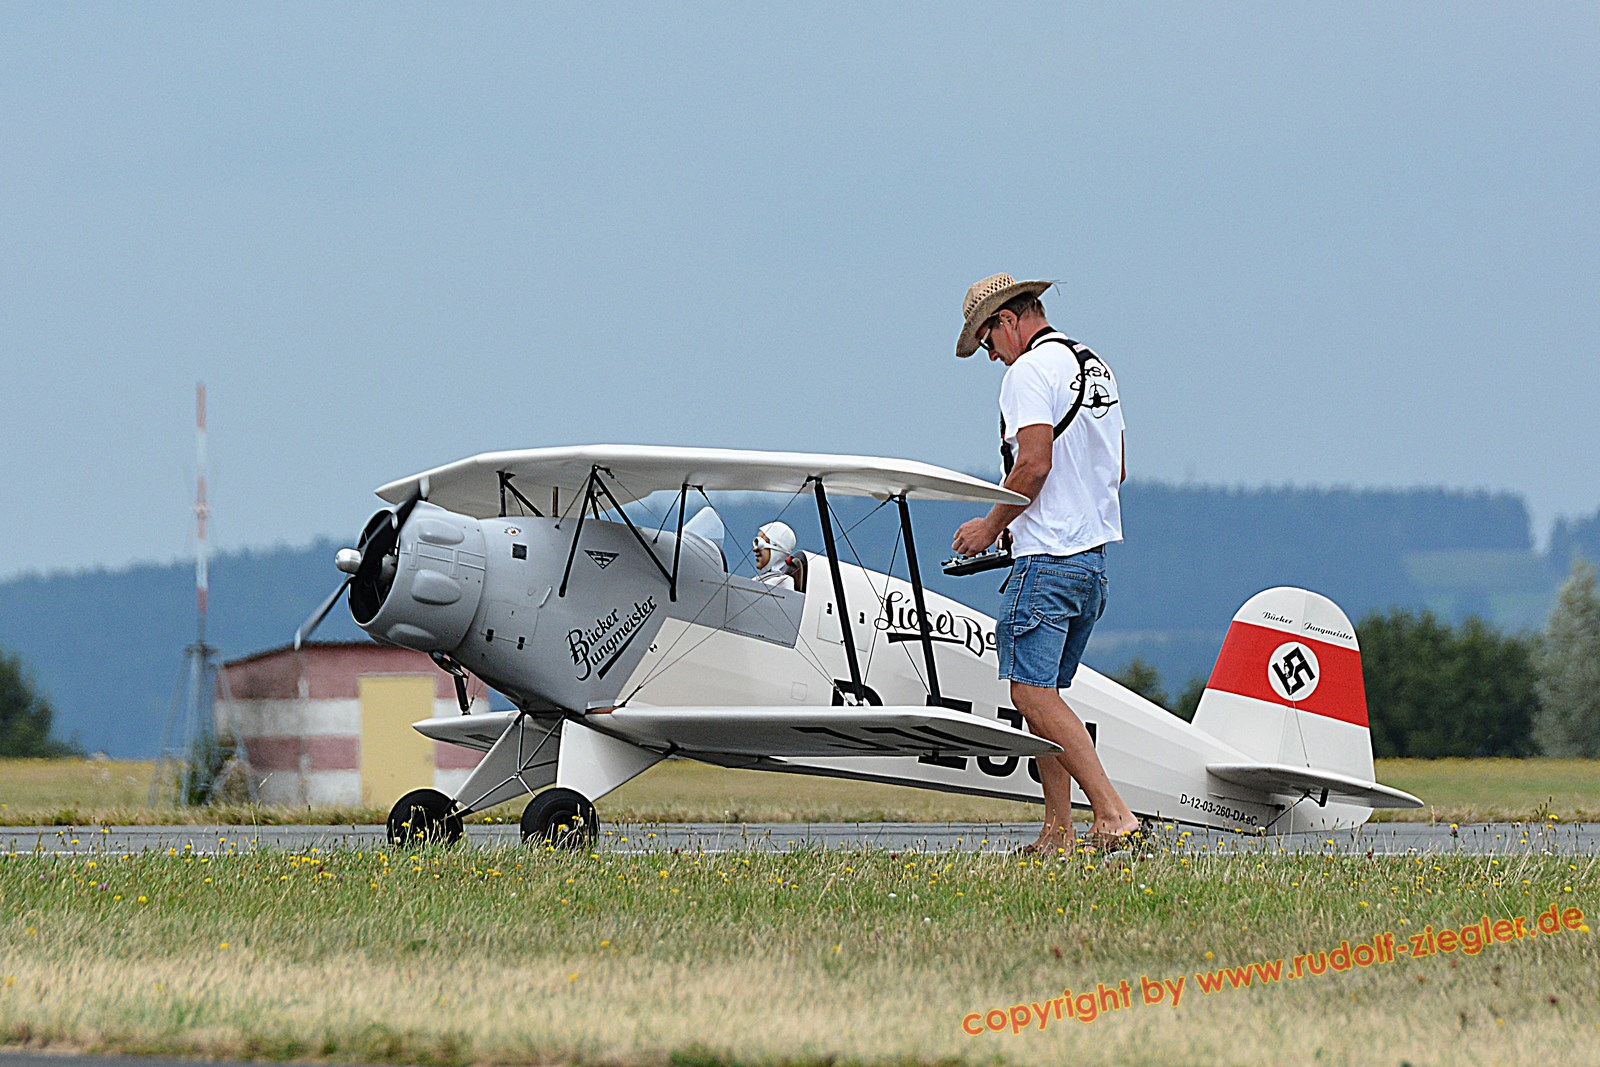 UNITED RC Flights 2016 am Flugplatz Bayreuth 042-A-S (1600x1200)